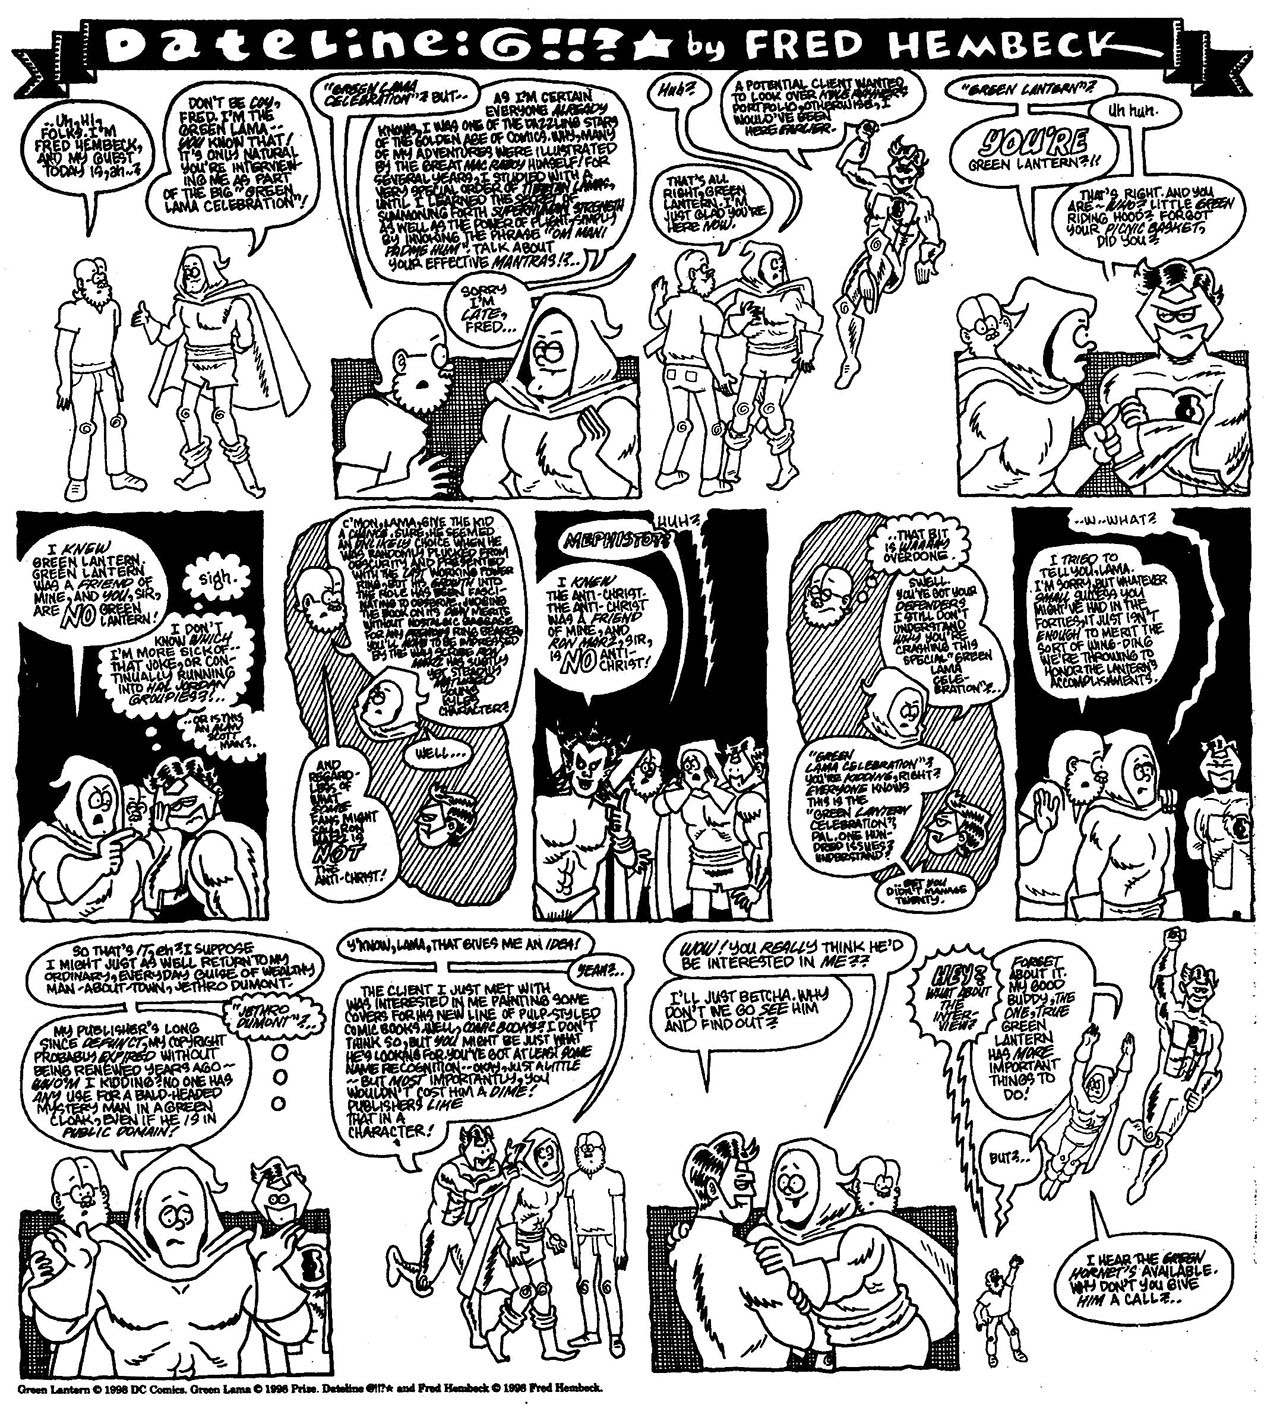 Read online The Nearly Complete Essential Hembeck Archives Omnibus comic -  Issue # TPB (Part 7) - 52